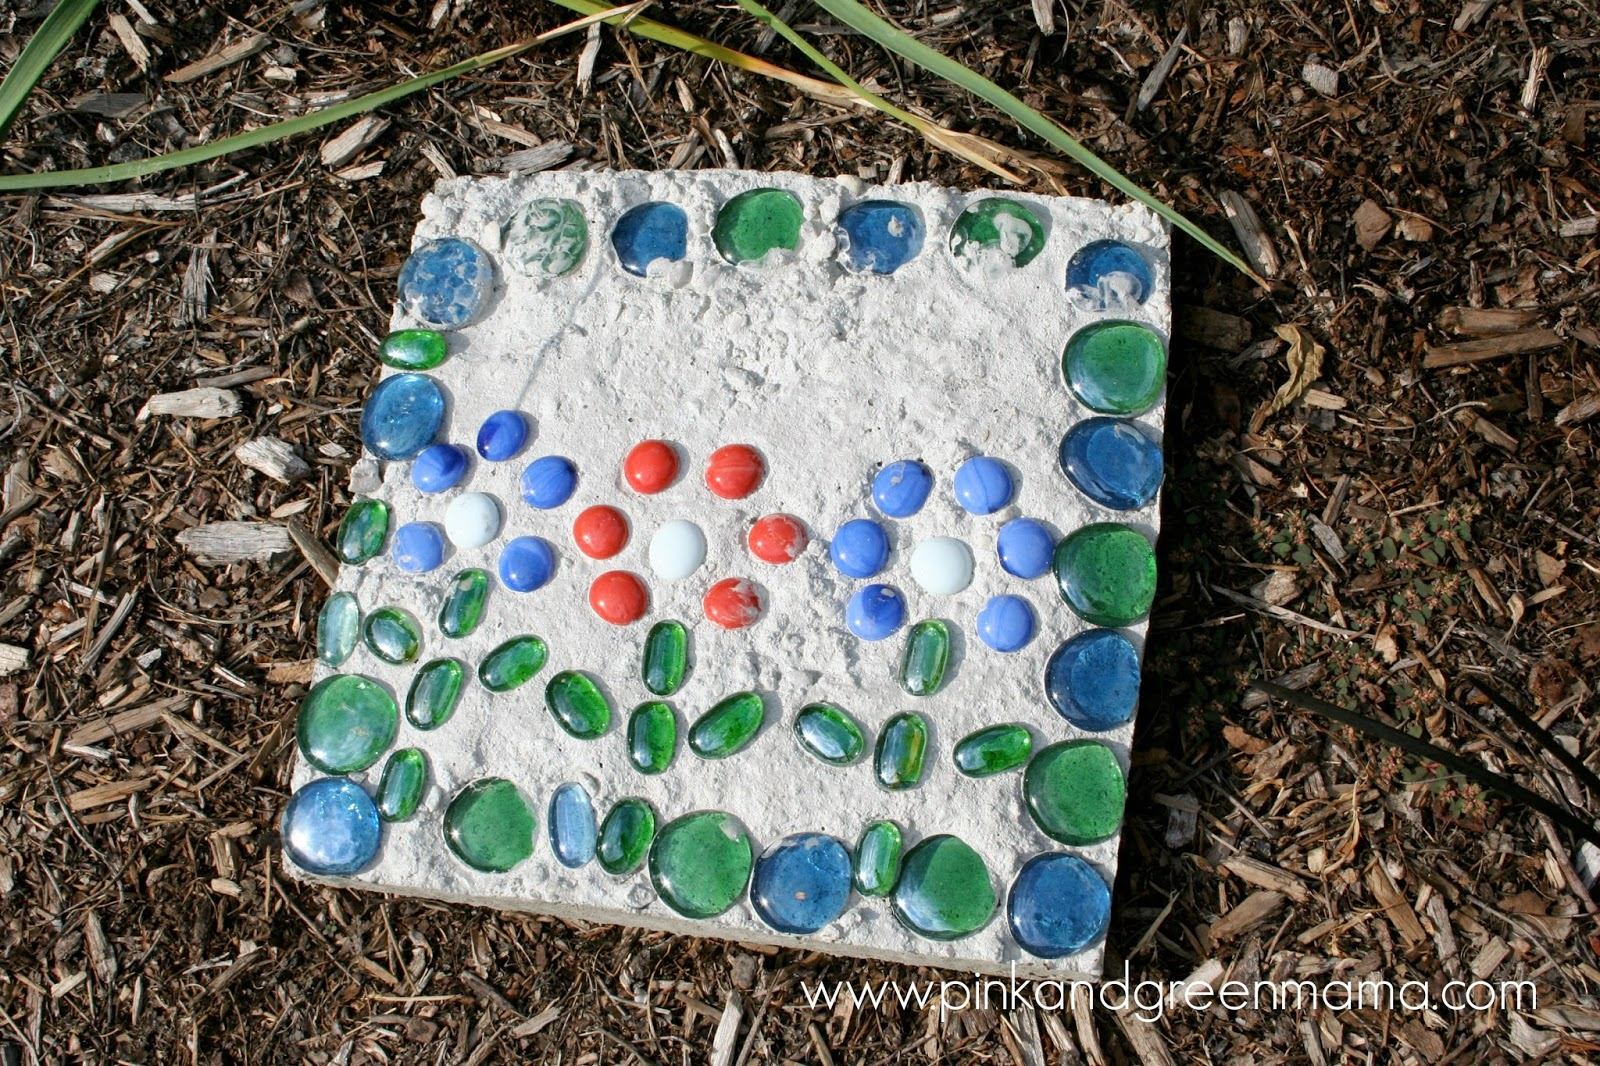 Pink and green mama daddy camp kid friendly cement stepping stones daddy camp kid friendly cement stepping stones for your yard workwithnaturefo